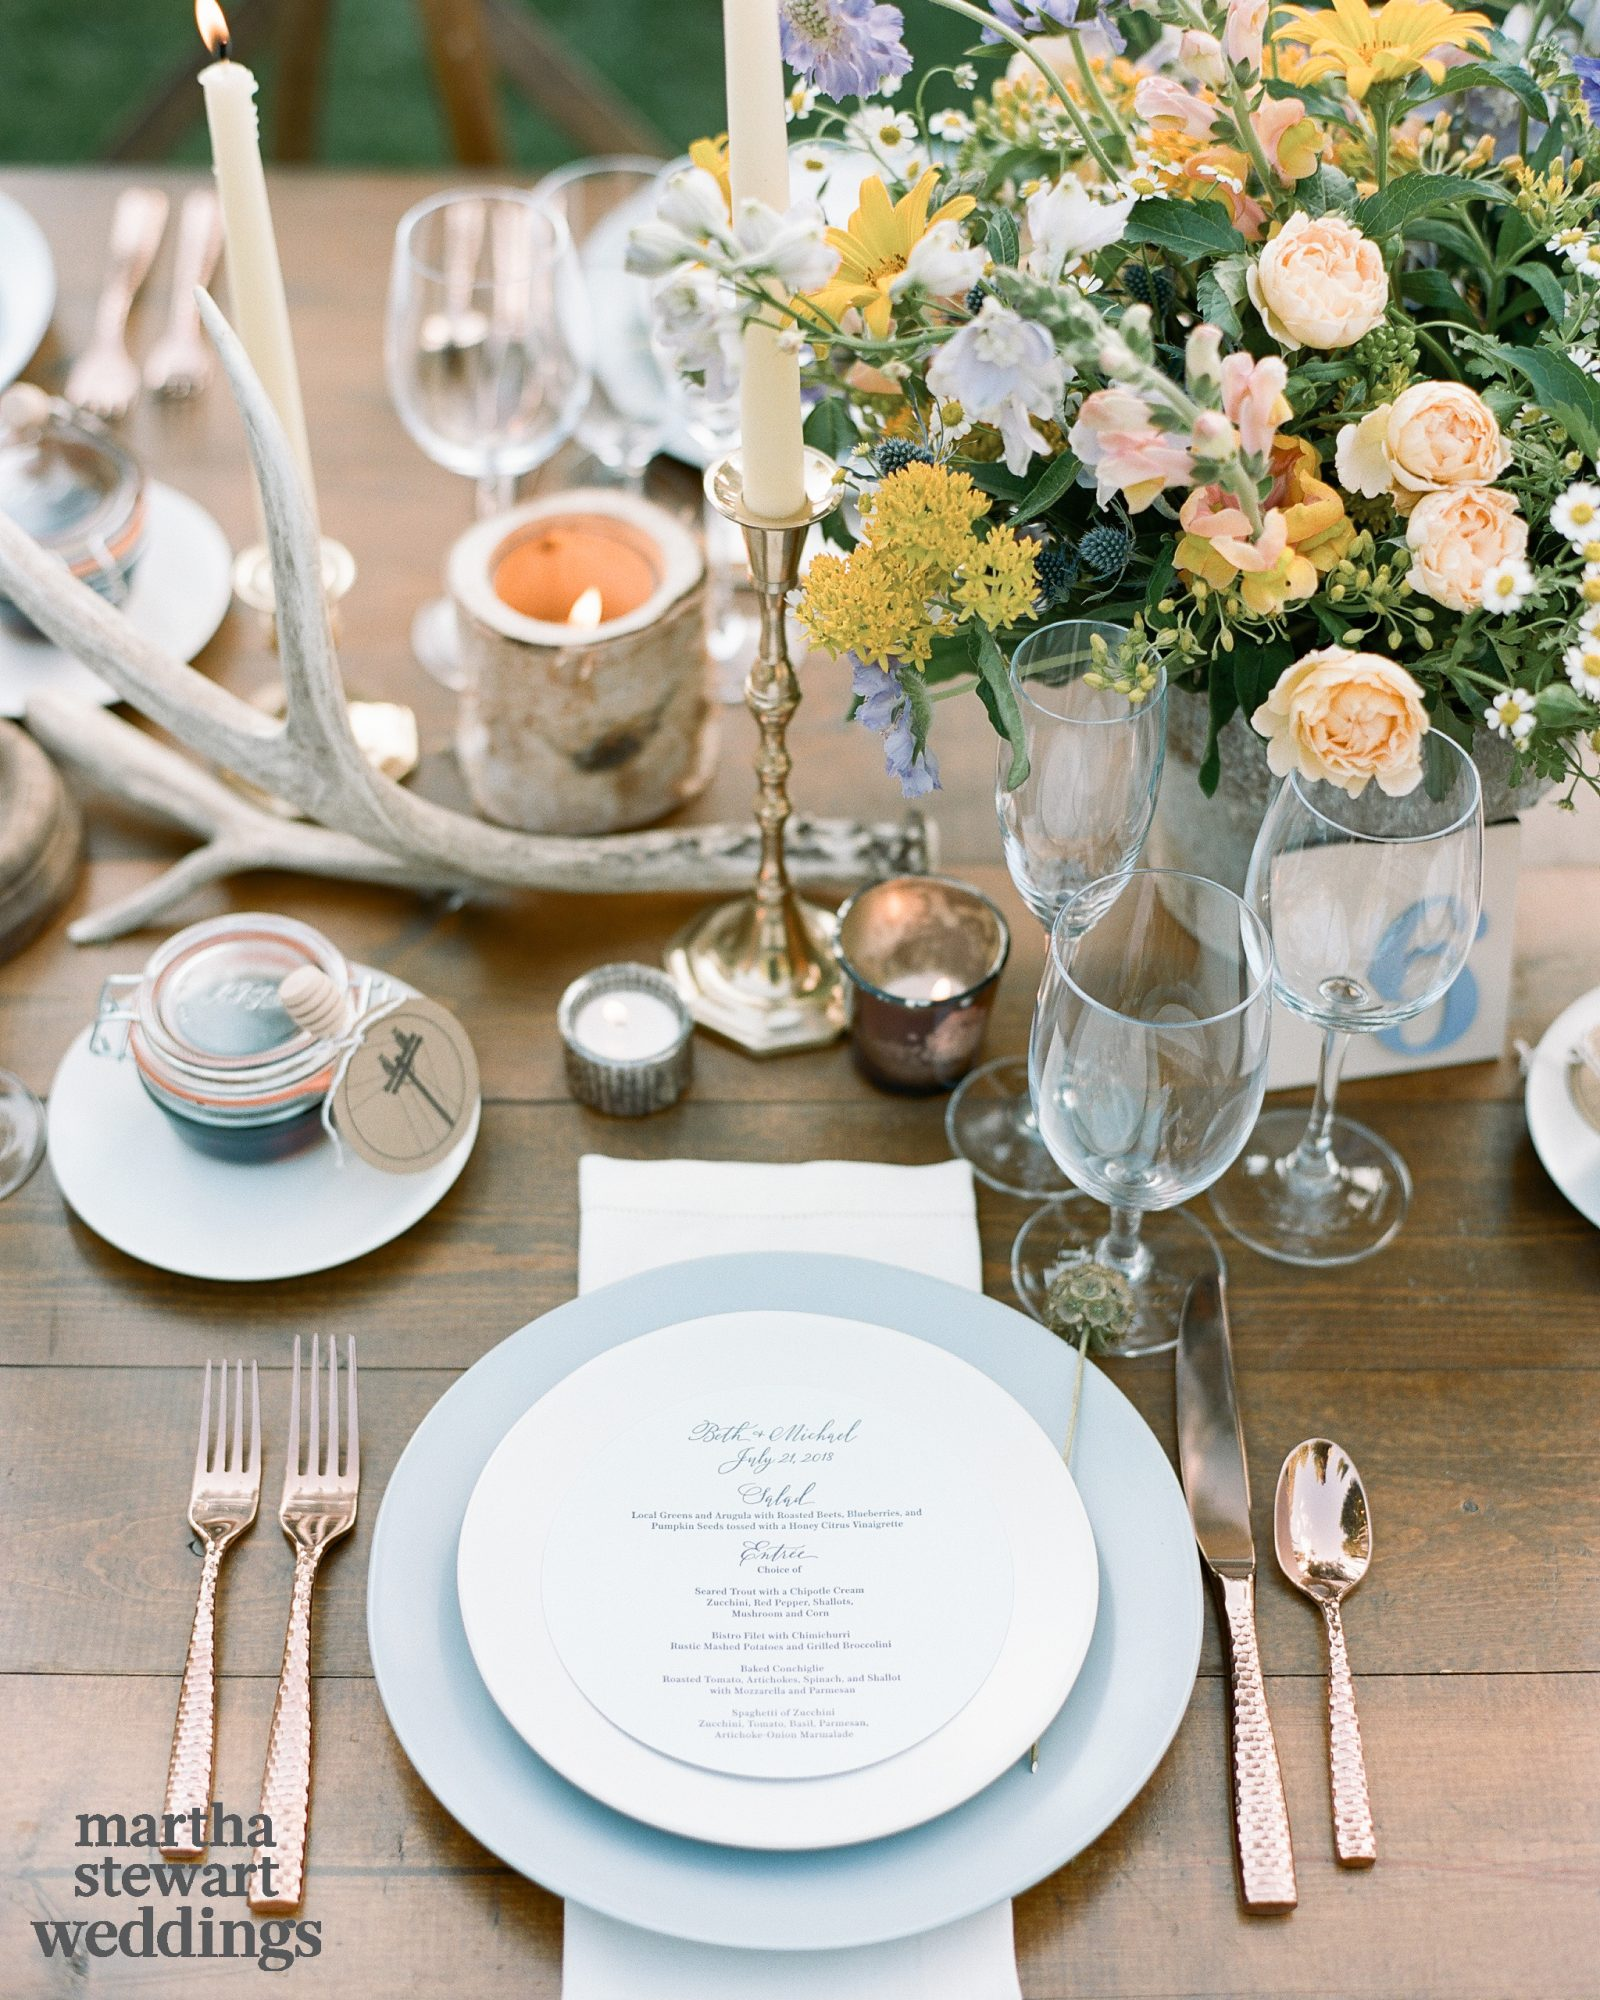 beth behrs michael gladis wedding place setting sylvie gil